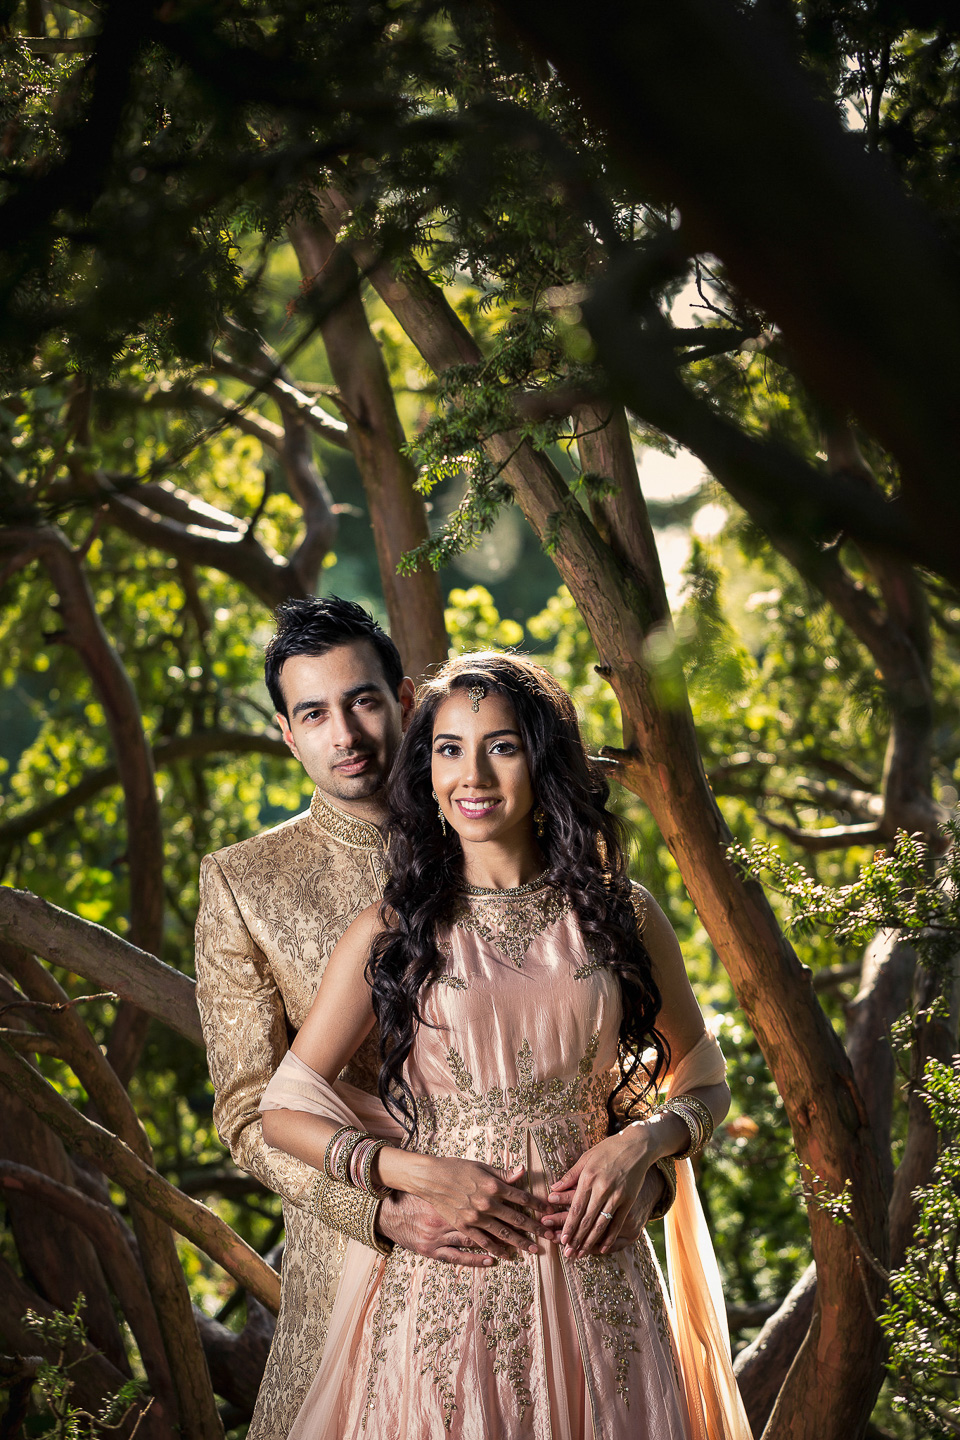 London Wedding Photographer Engagement Photoshoot London Indian Wedding -4.jpg